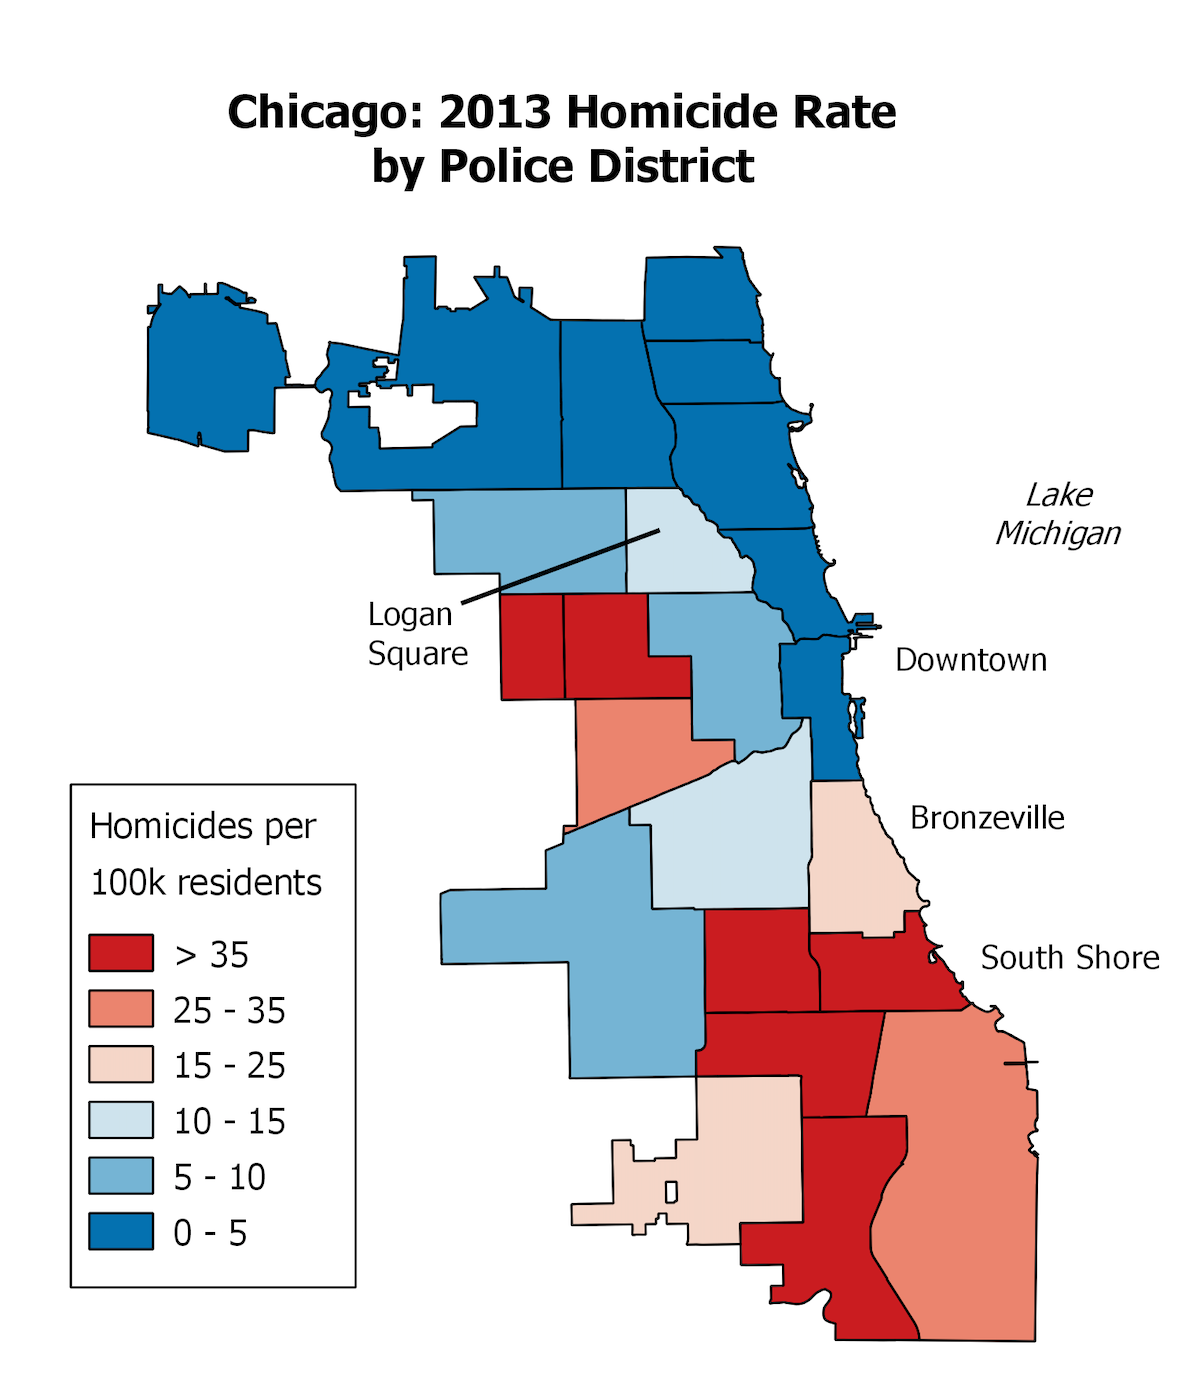 Maps of Crime in Chicago: Crime in Different Neighborhoods ... Chicago Murder Map on chicago cook county illinois map, chicago canada map, chicago death map, chicago texas map, chicago shootings, chicago murders over the weekend, chicago neighborhood map, chicago street map, chicago mafia map, chicago gang murders, worst parts of chicago map, chicago homicides by year, chicago gang map, chicago race map, dangerous parts of chicago map, chicago california map, chicago gang neighborhoods, chicago crime heat map, homicide map,